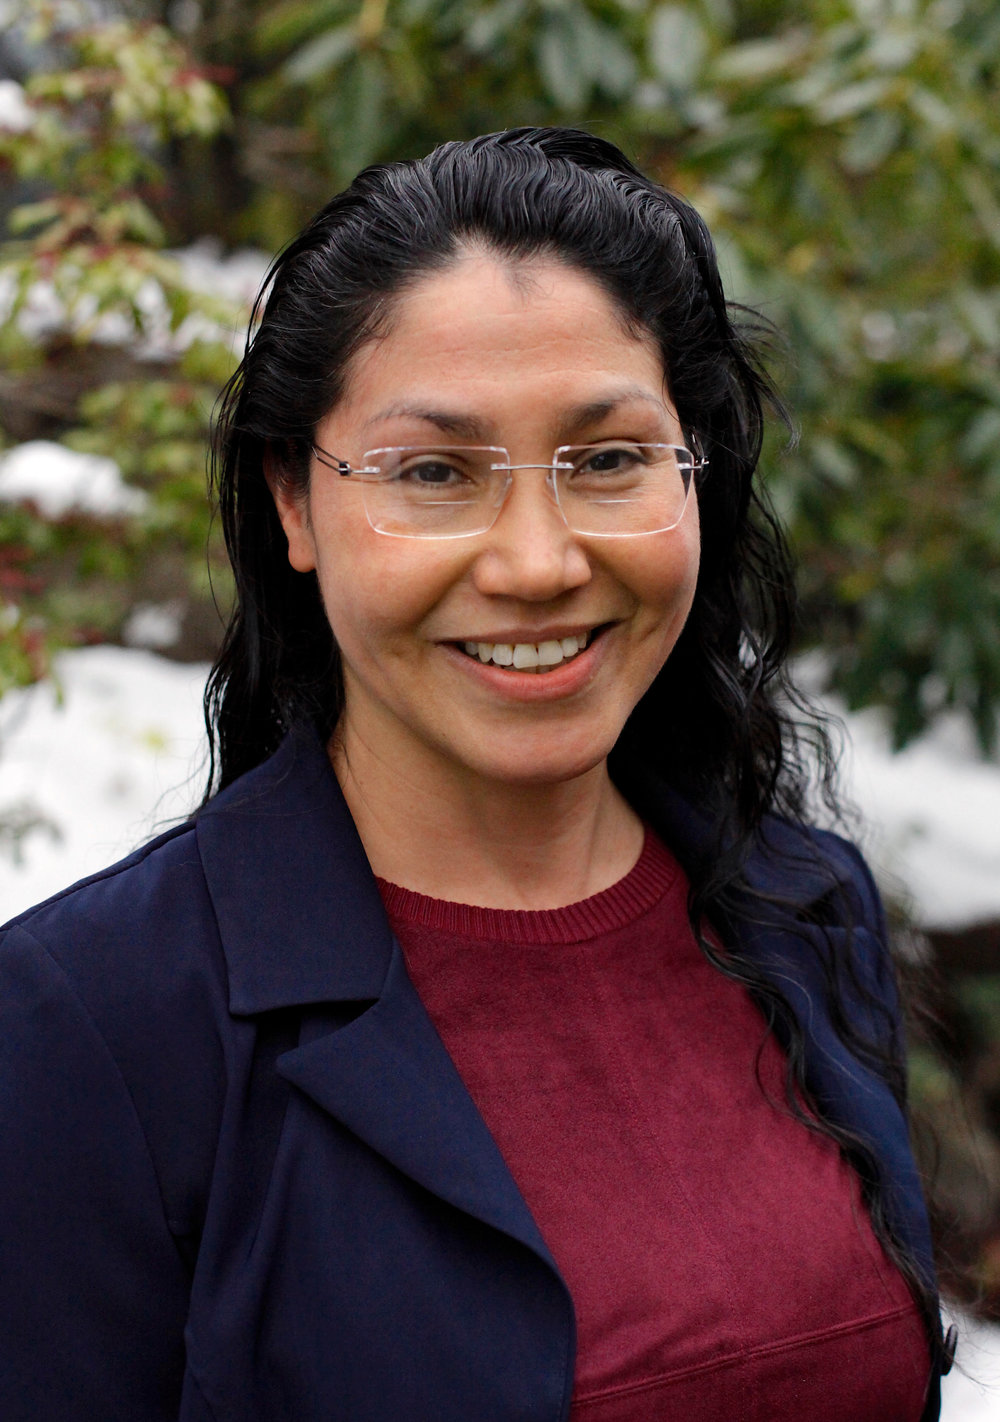 Susan Santiago-Turner, Ph.D, lmhc, therapist   ∙ Adults (Ages 40+) ∙ Ageism ∙ Anxiety ∙ Career Counseling ∙ Chronic Illness ∙ Coping Skills ∙ Depression ∙ Gendered Racism ∙ Grief & Loss ∙ Infertility ∙ Life Transitions ∙ Neuro-Cognitive Disorders ∙ Relationship Issues ∙ Self-Esteem ∙ Spirituality ∙ Stress ∙ Women's Issues